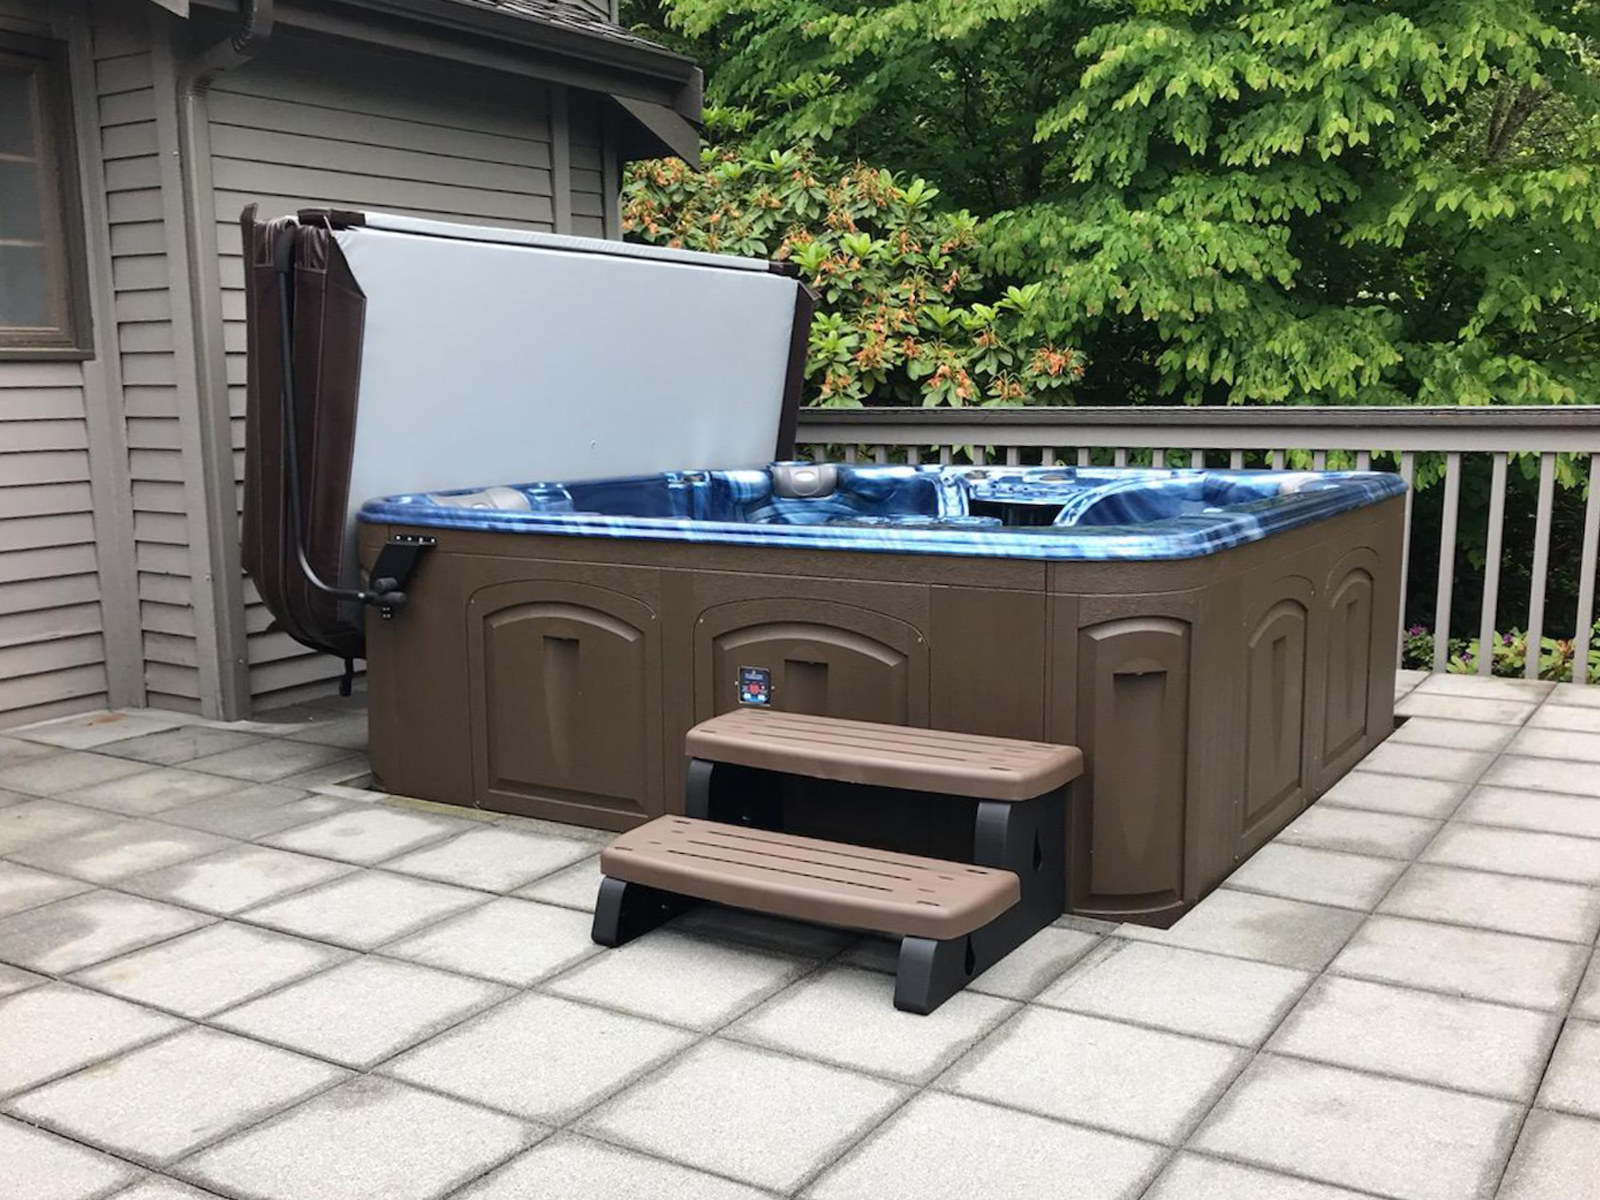 Hot tub outside with steps